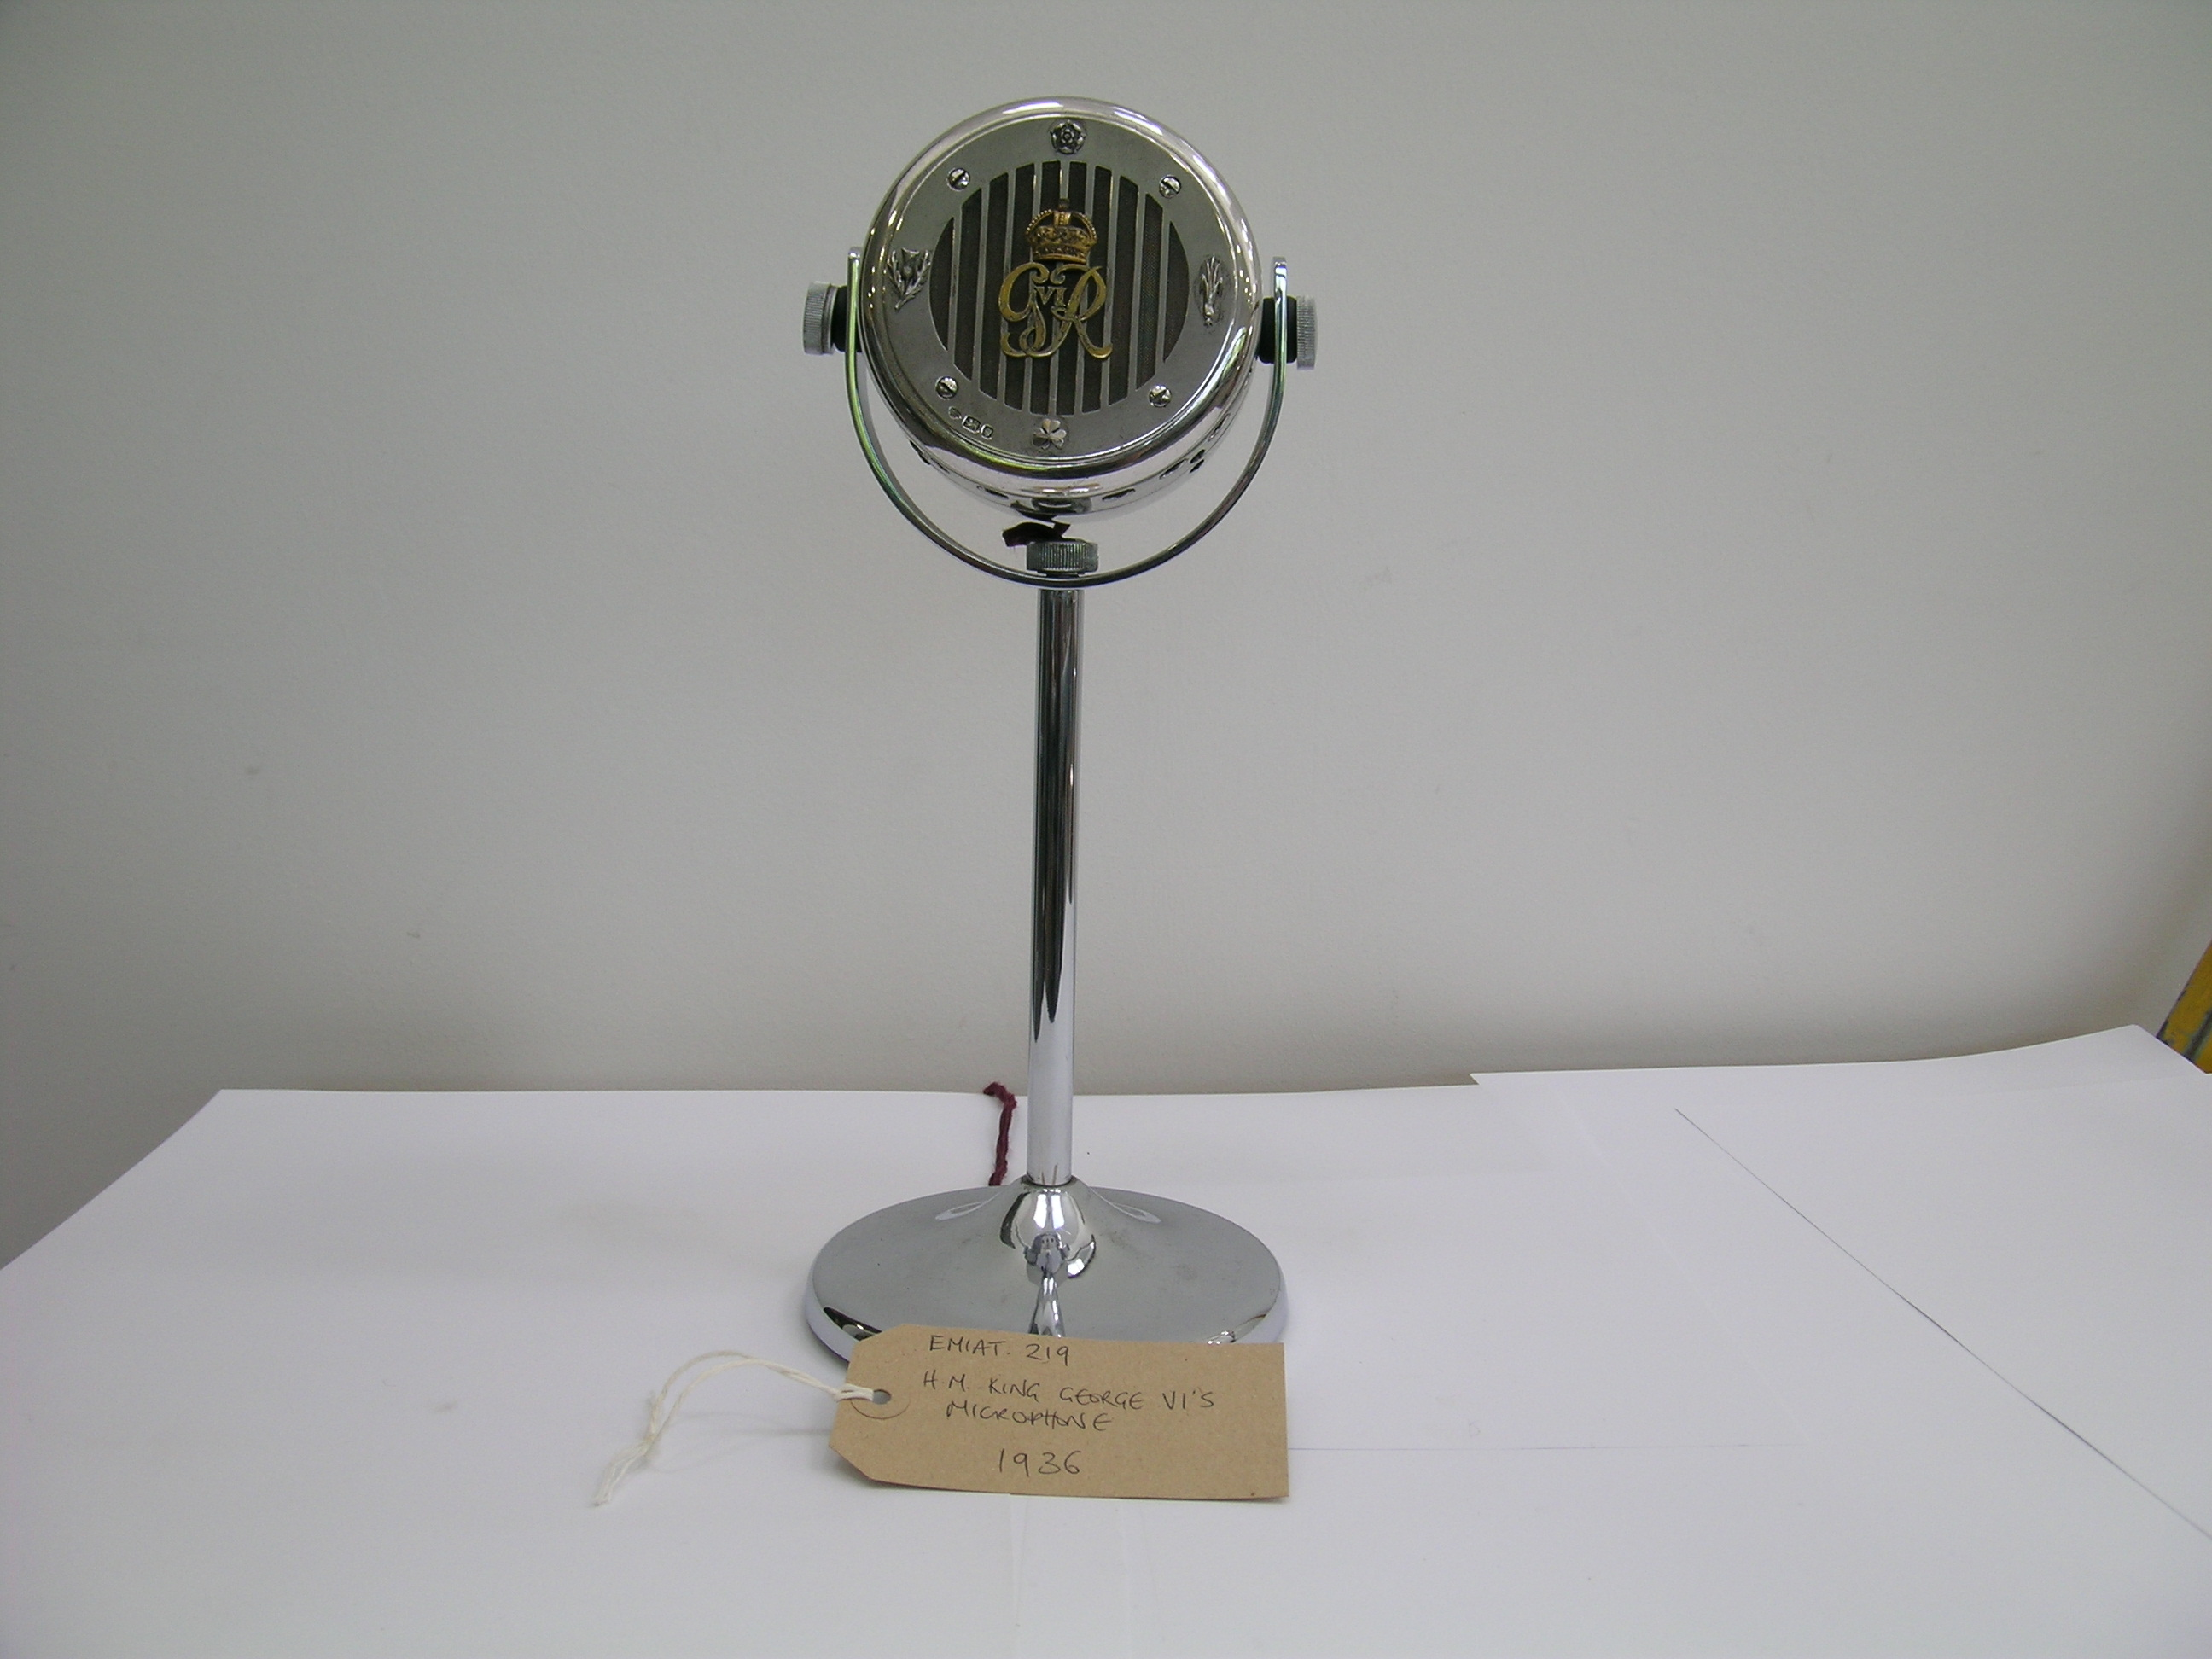 King George VI Microphone - part of the EMI Archive Trust Collection